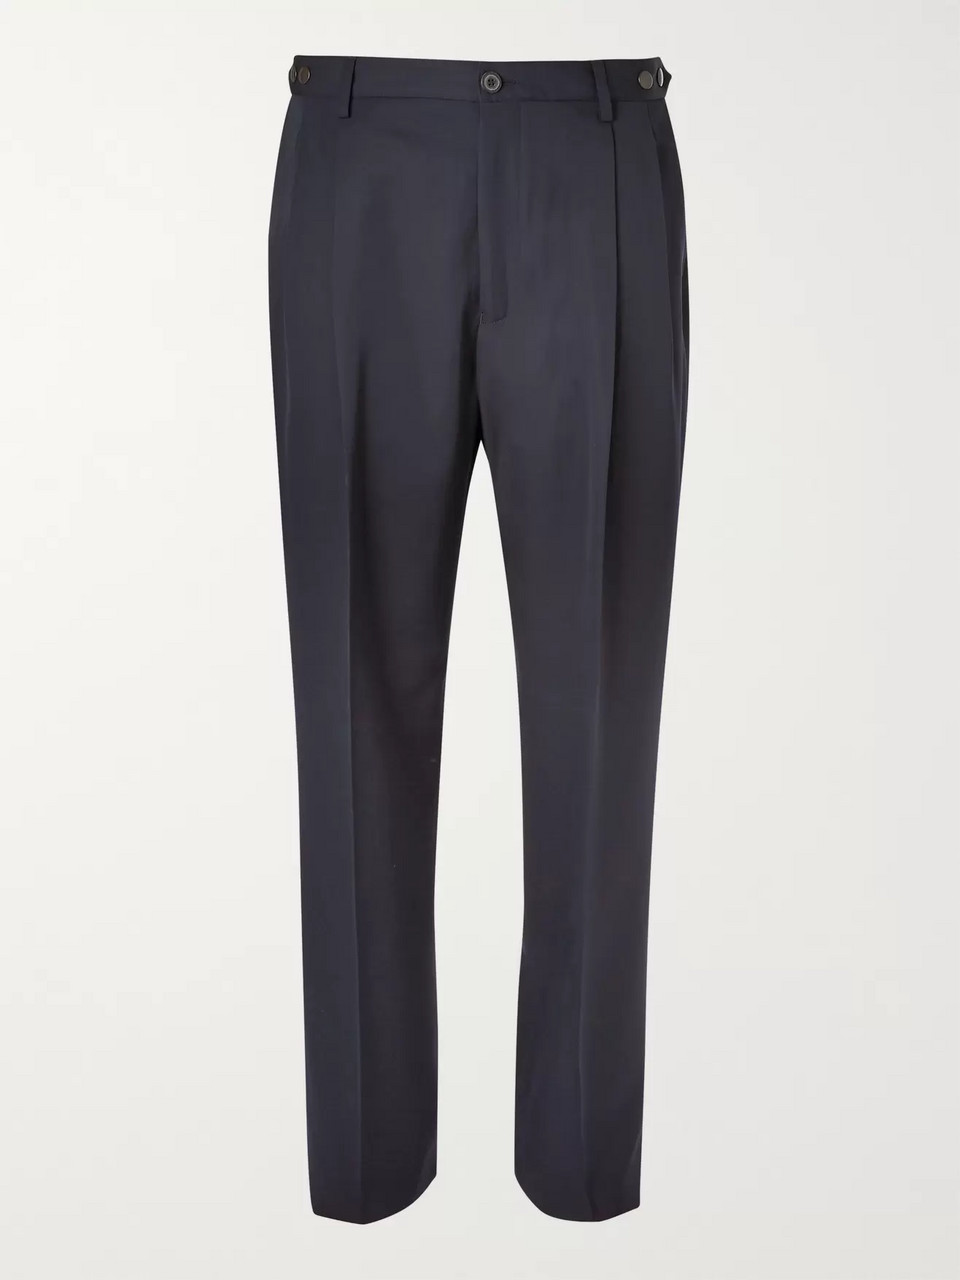 Lanvin Navy Tapered Pleated Virgin Wool Trousers